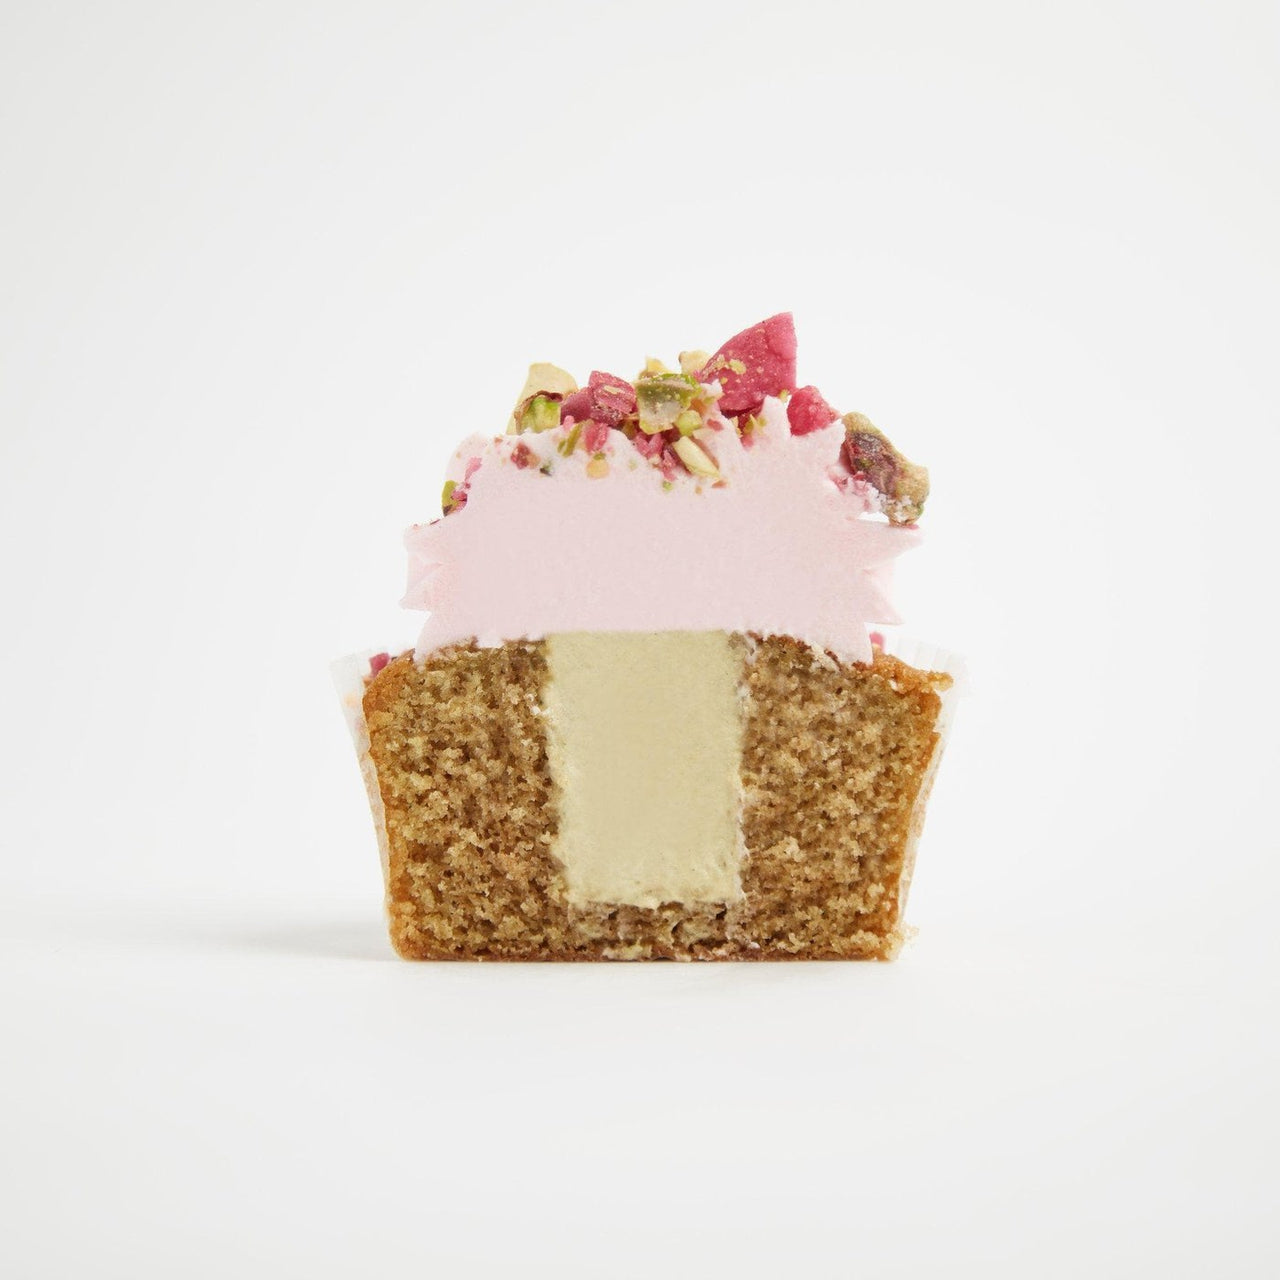 Gluten-Free Rose & Pistachio Cupcakes by Crumbs & Doilies